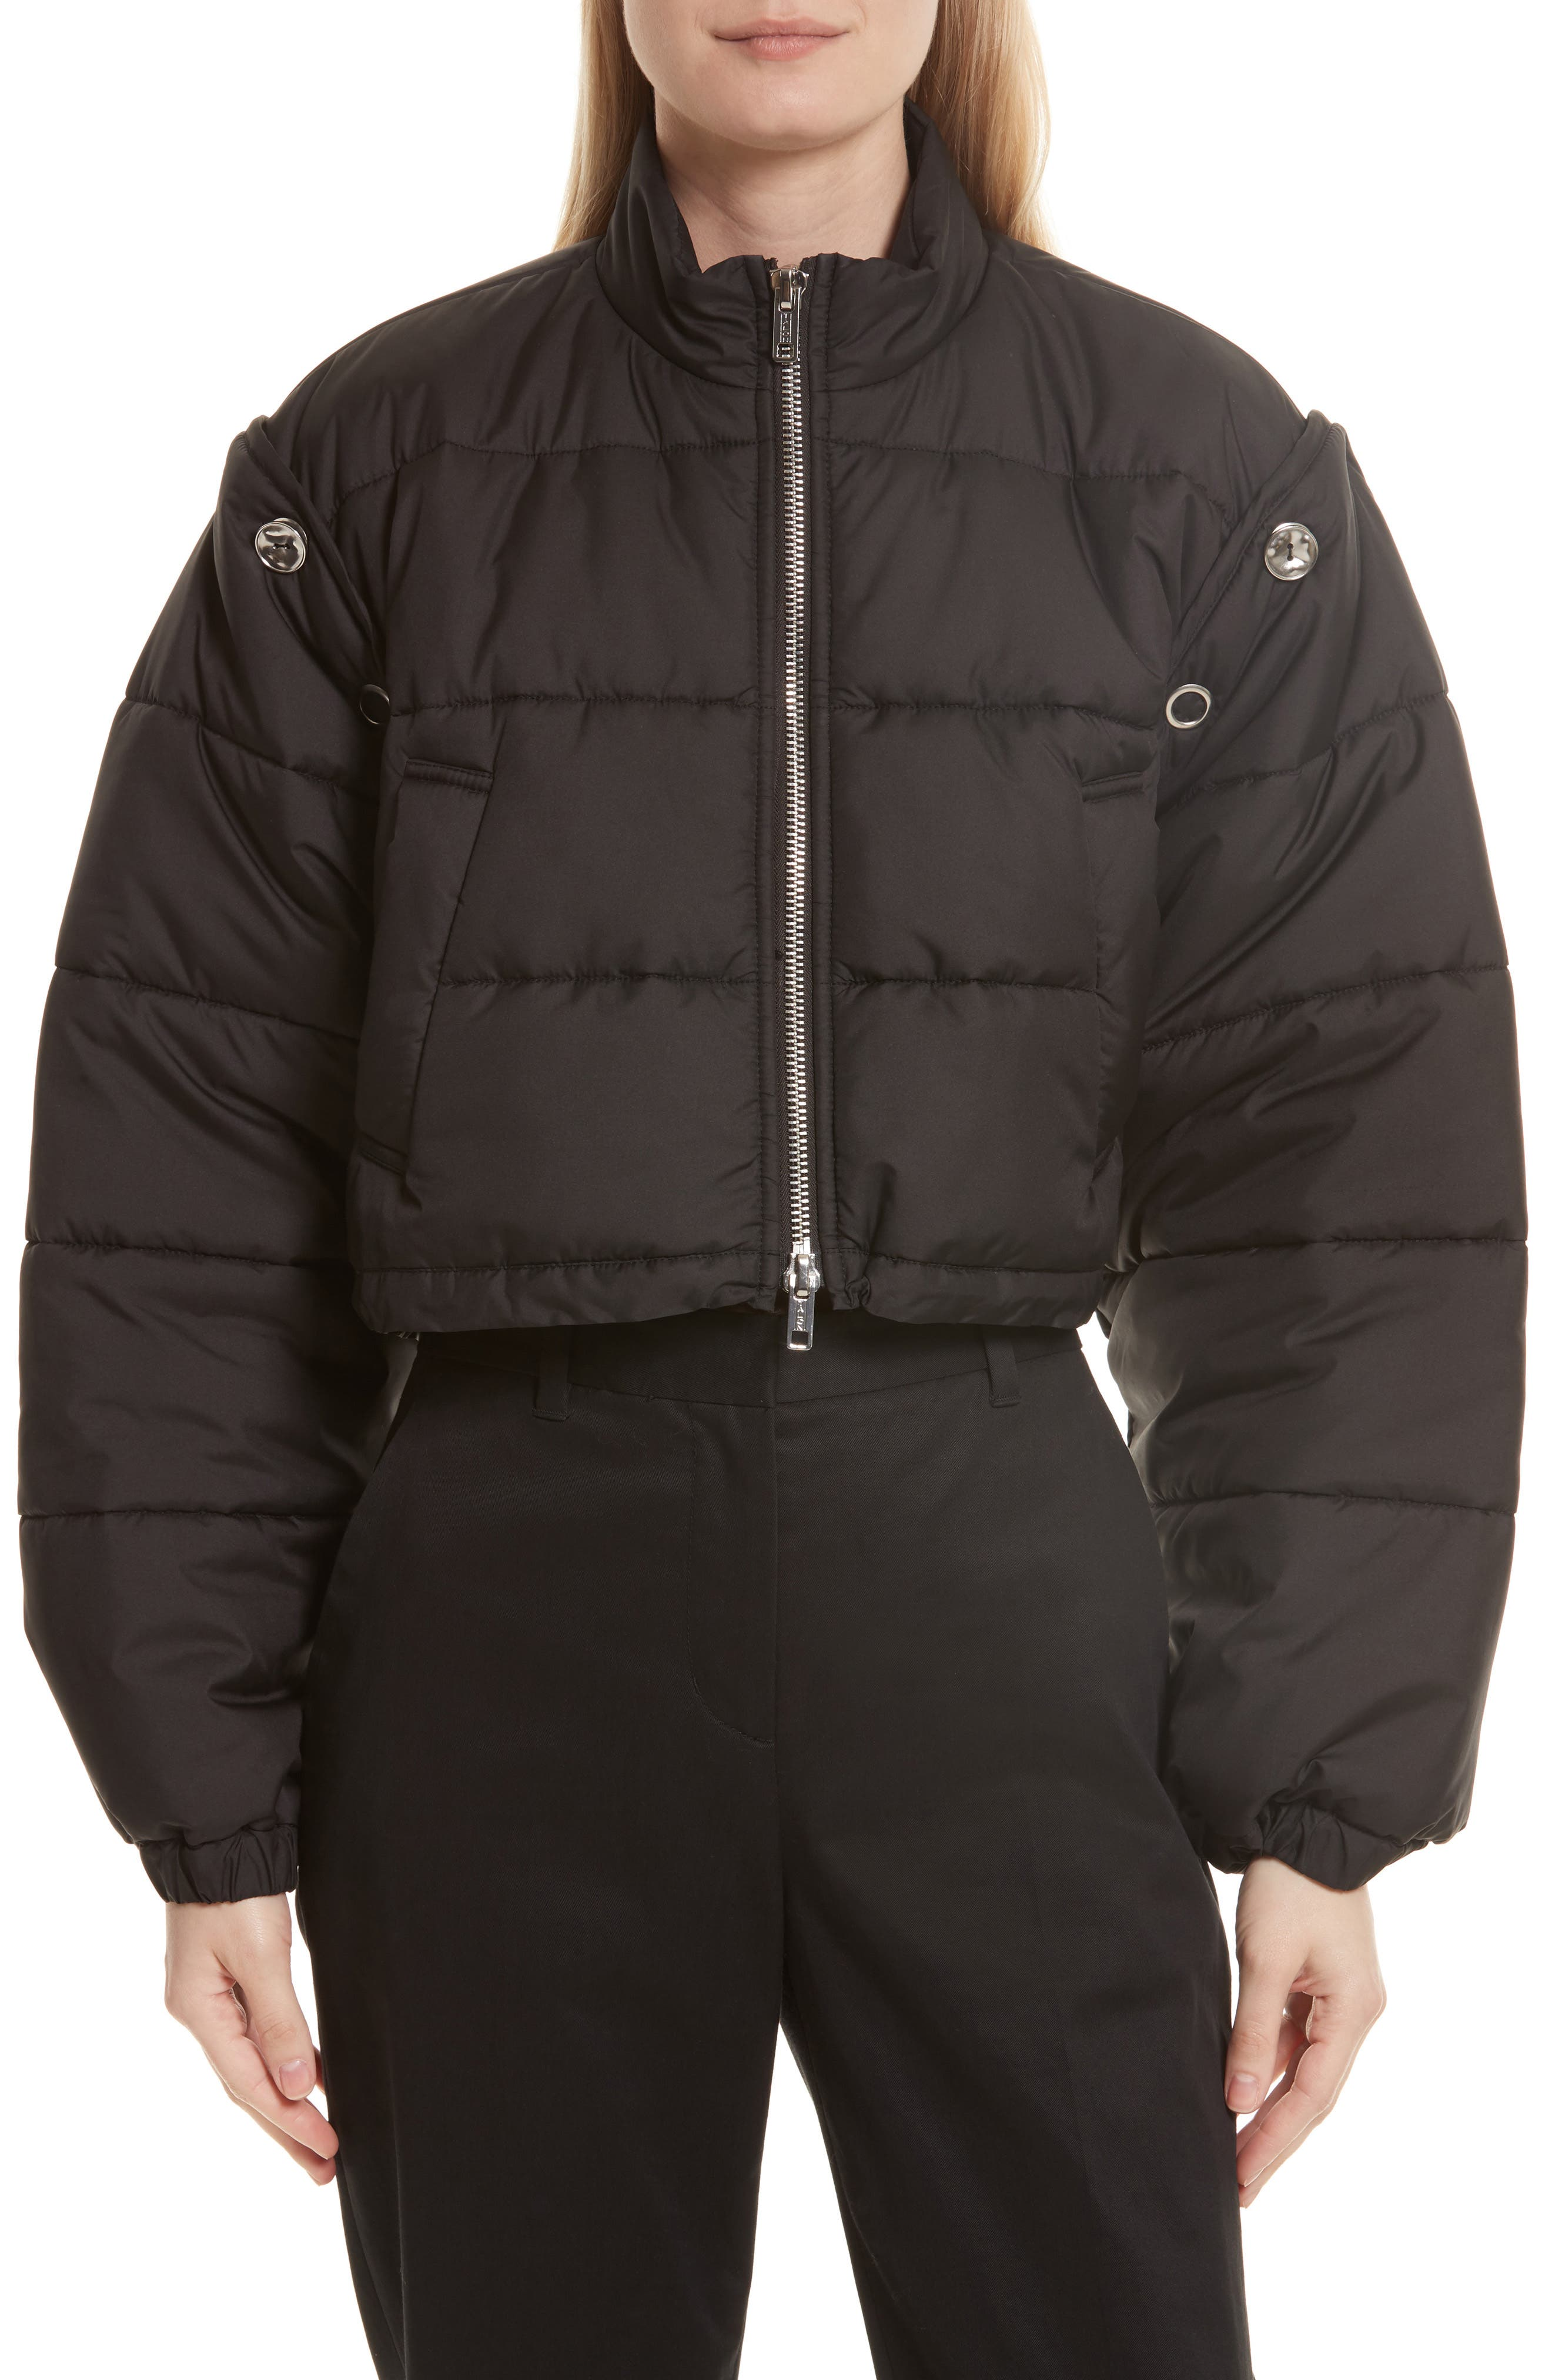 Main Image - 3.1 Phillip Lim Quilted Bomber